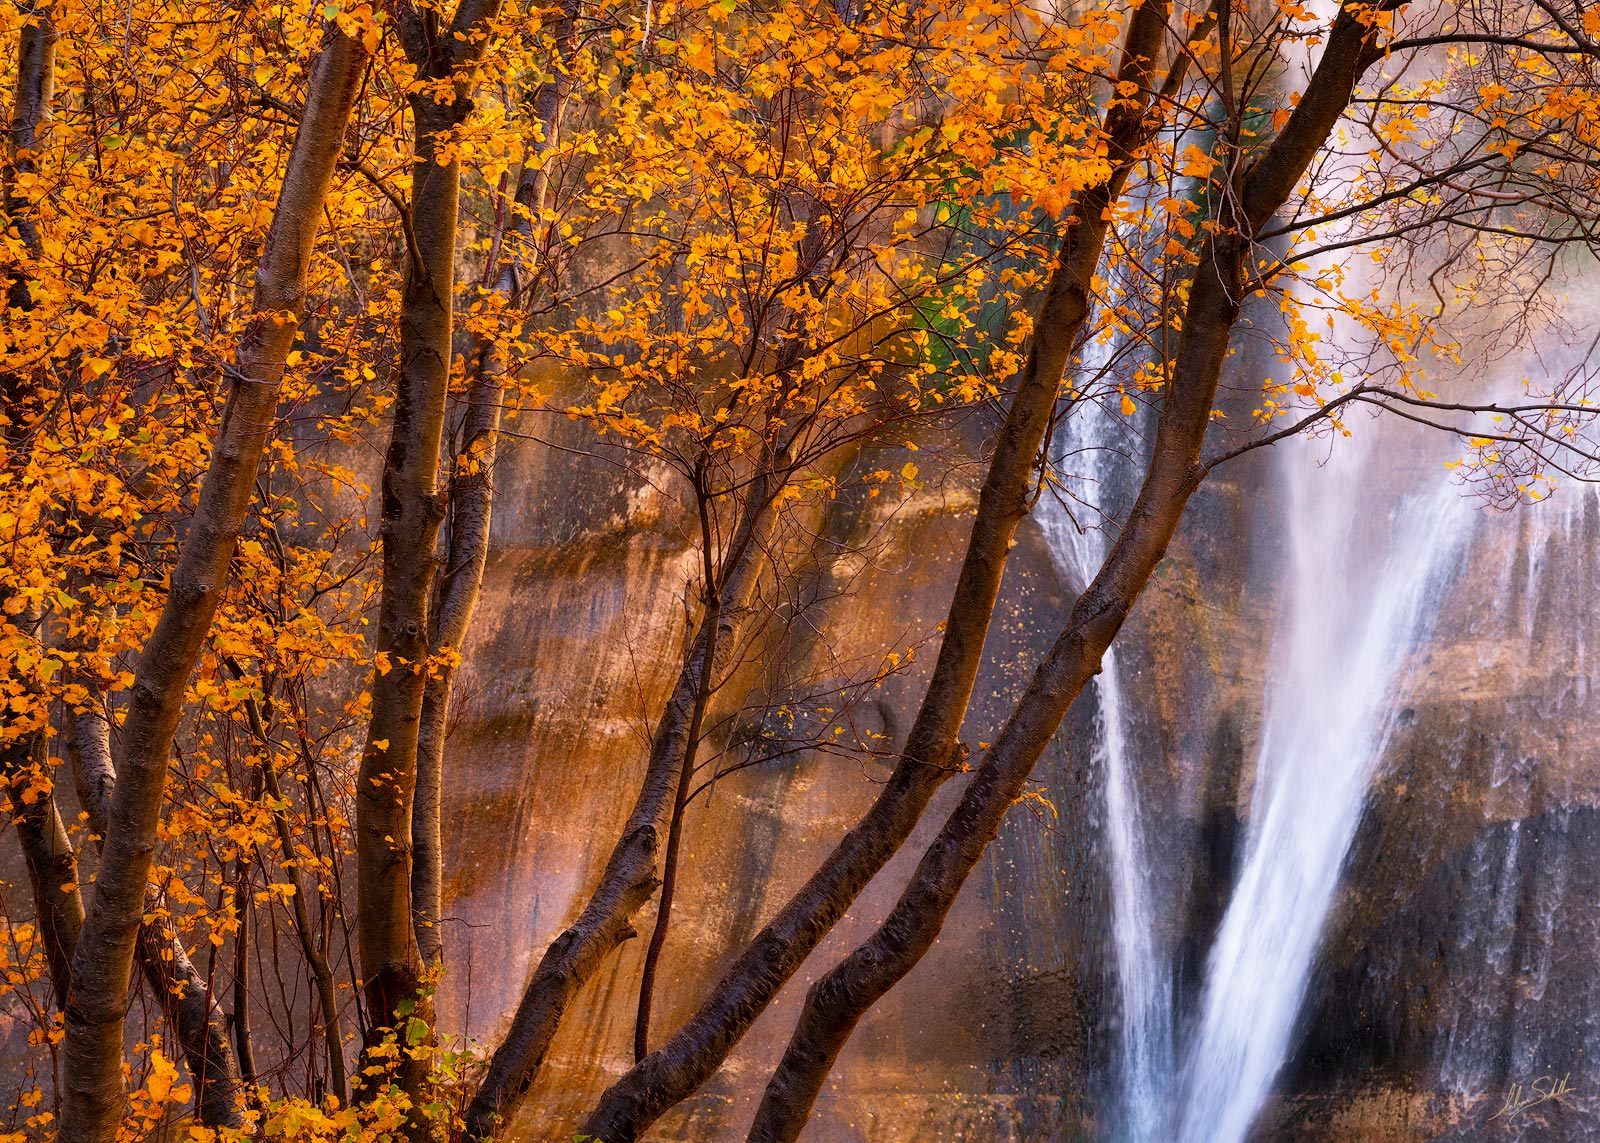 Autumn, Fall, Fall Color, Fall Color in Utah, grand staircase, grand staircase-escalante, Lower Calf Creek Falls, National Monument, UT, Utah, photo